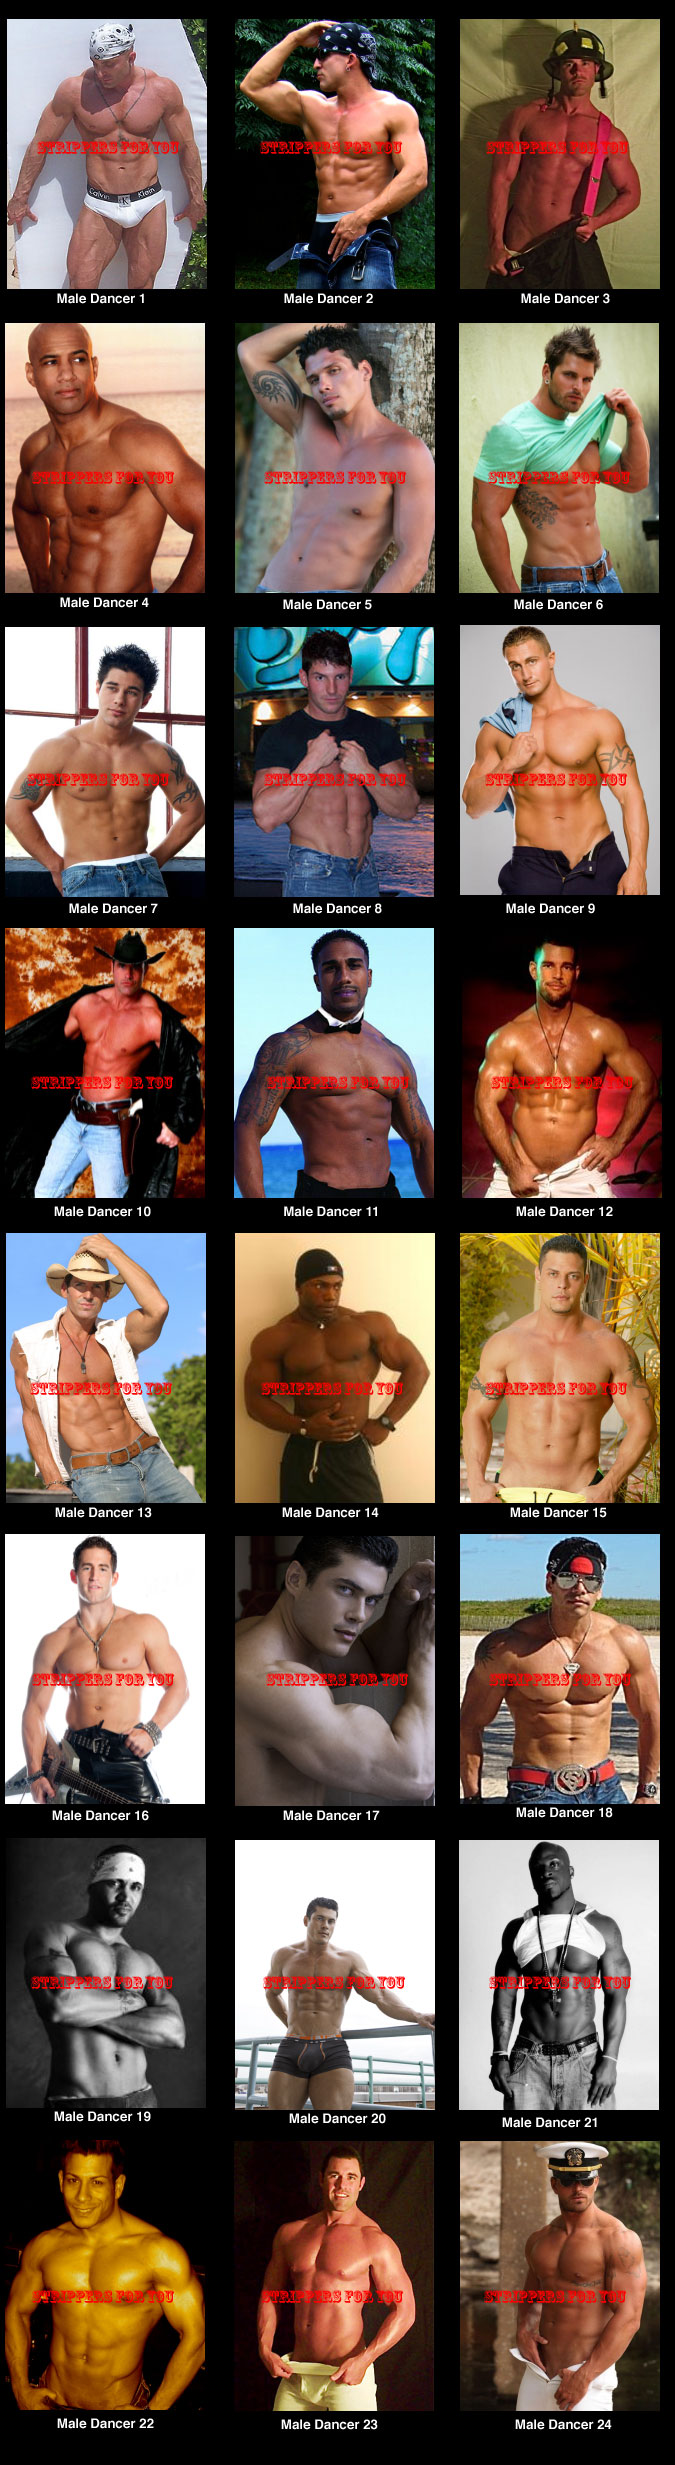 Minneapolis male strippers